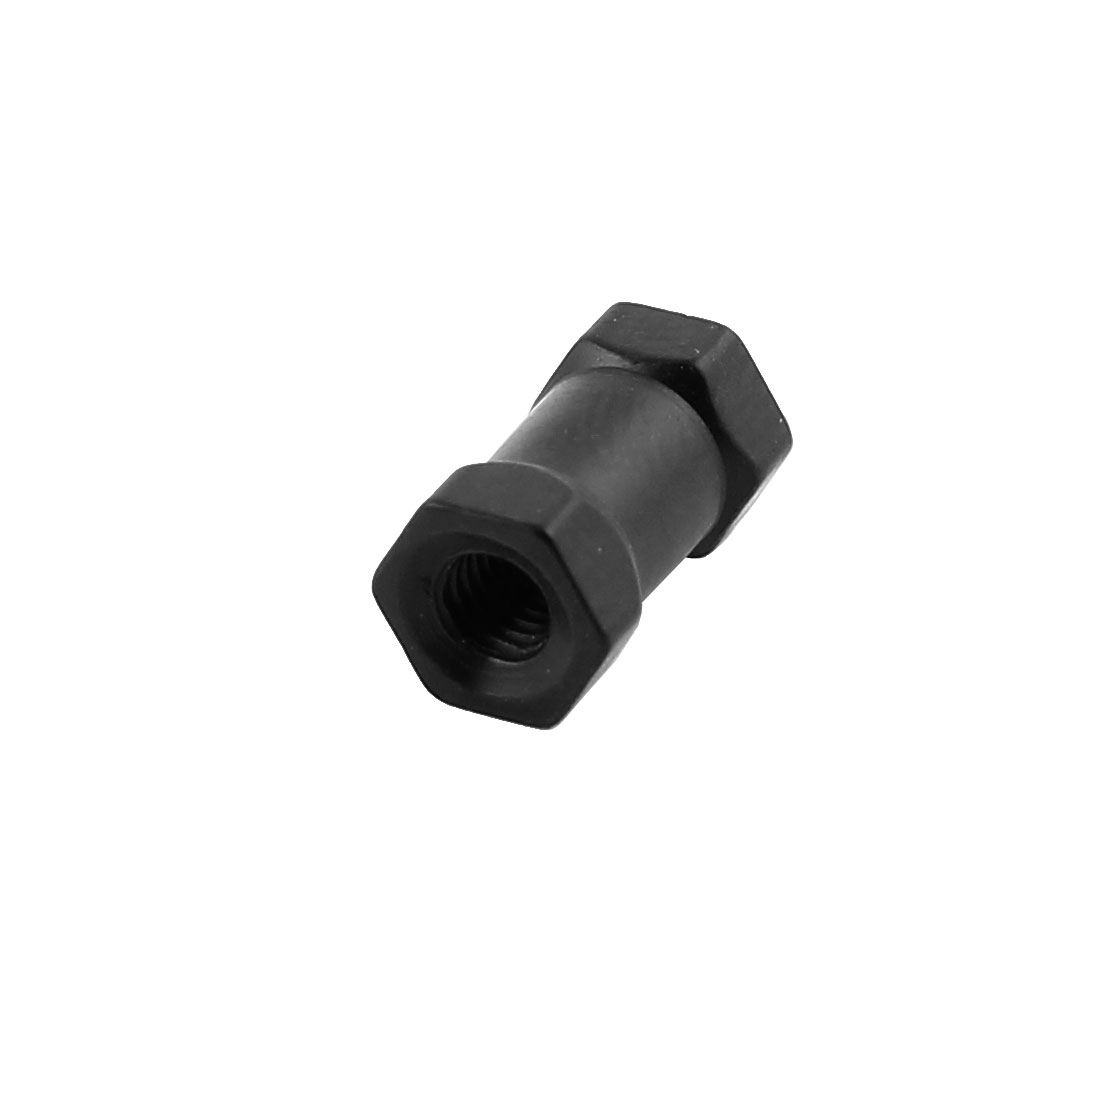 Black M3 x 10mm Female Thread Hexagonal Aluminum Column for Quadcopter